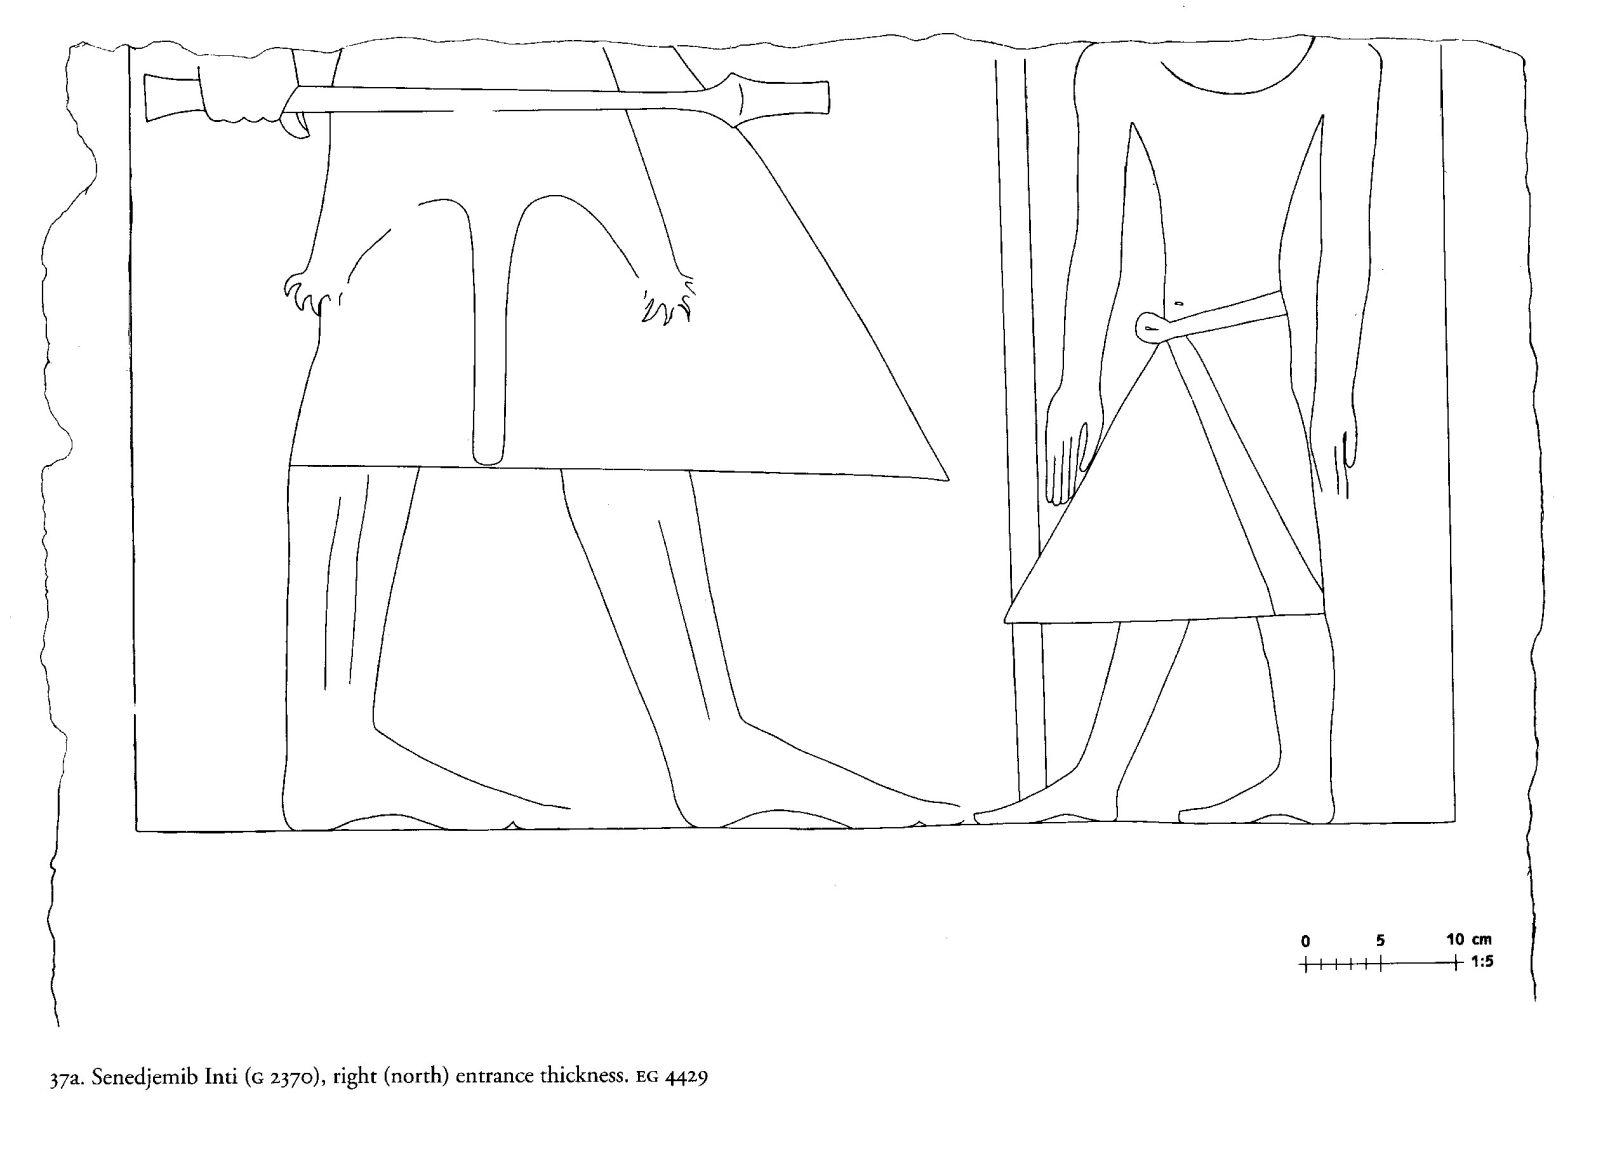 Drawings: G 2370: relief from Room IV, N entrance thickness